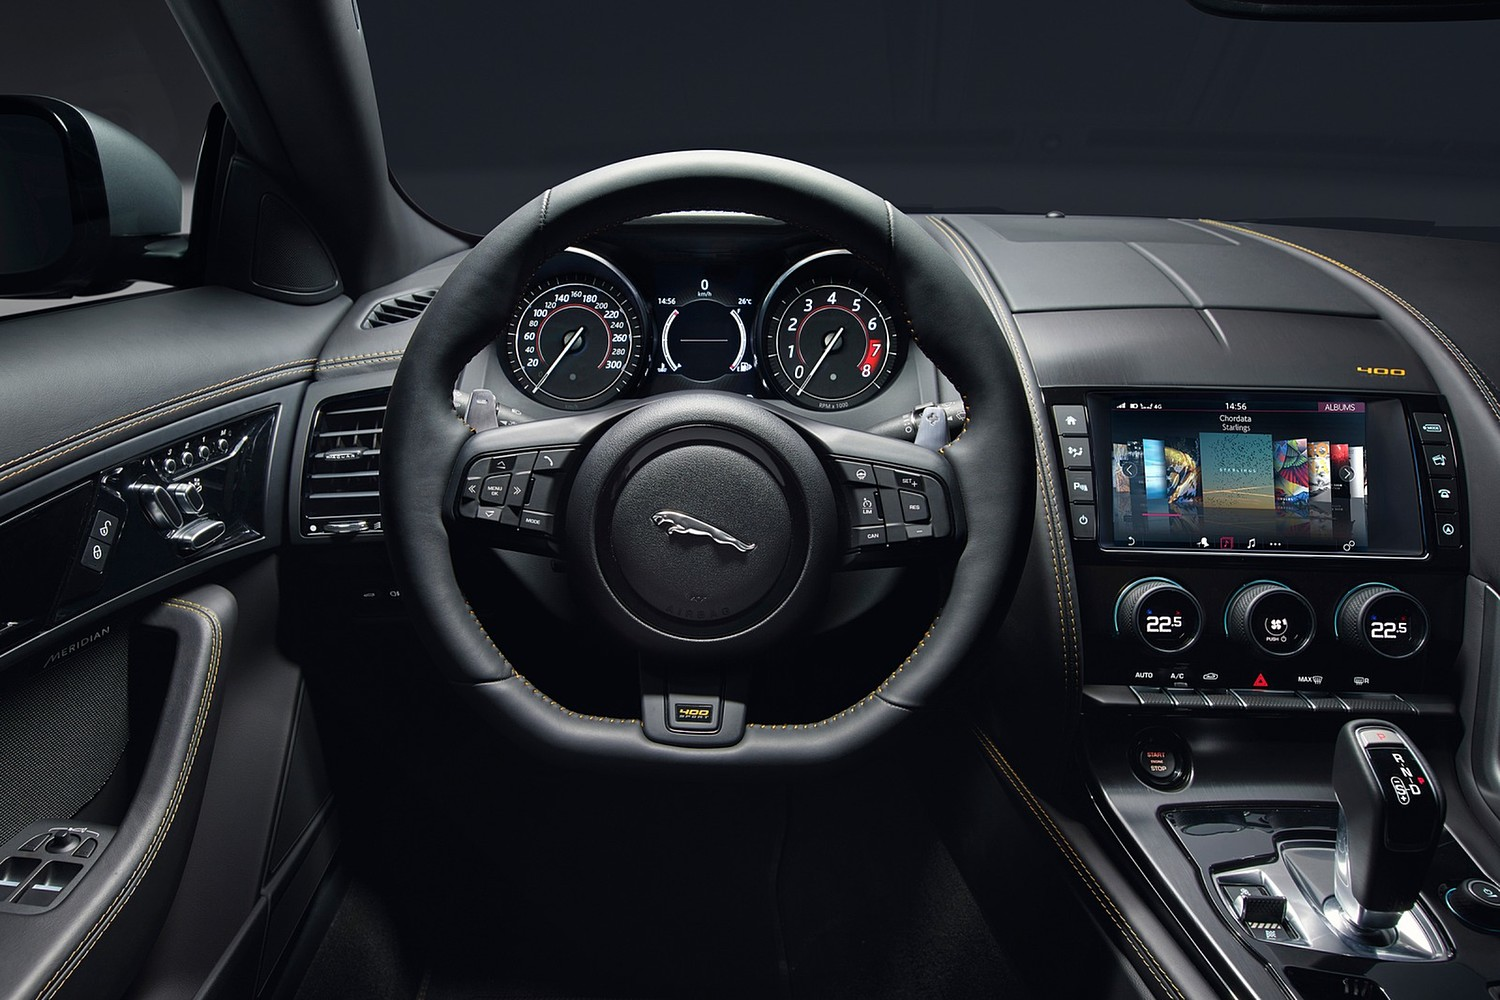 2018 Jaguar F-TYPE 400 Sport Coupe Steering Wheel Detail